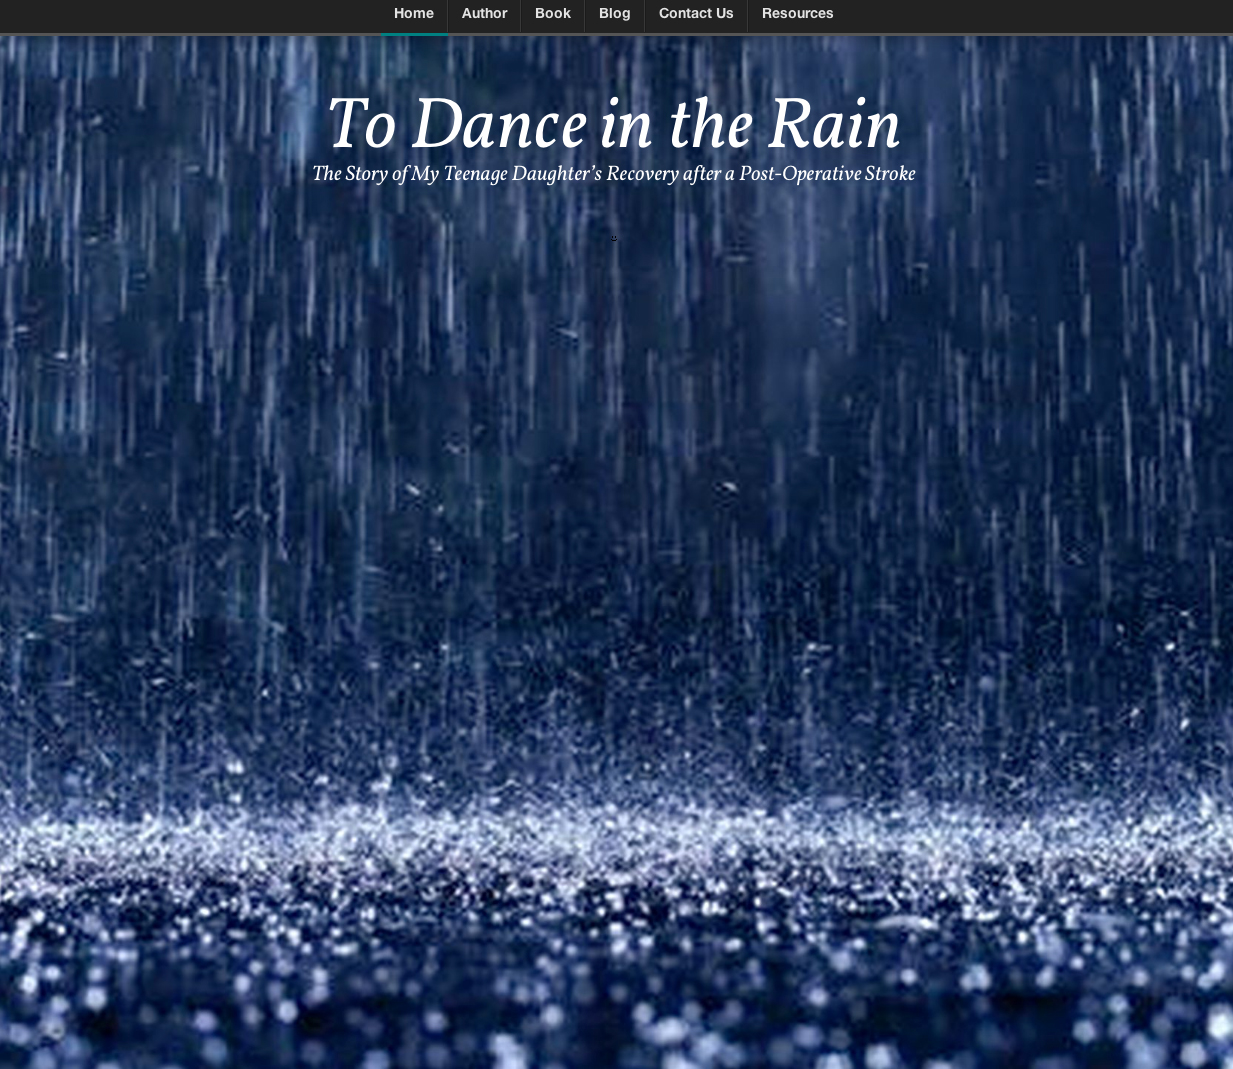 To Dance in the Rain